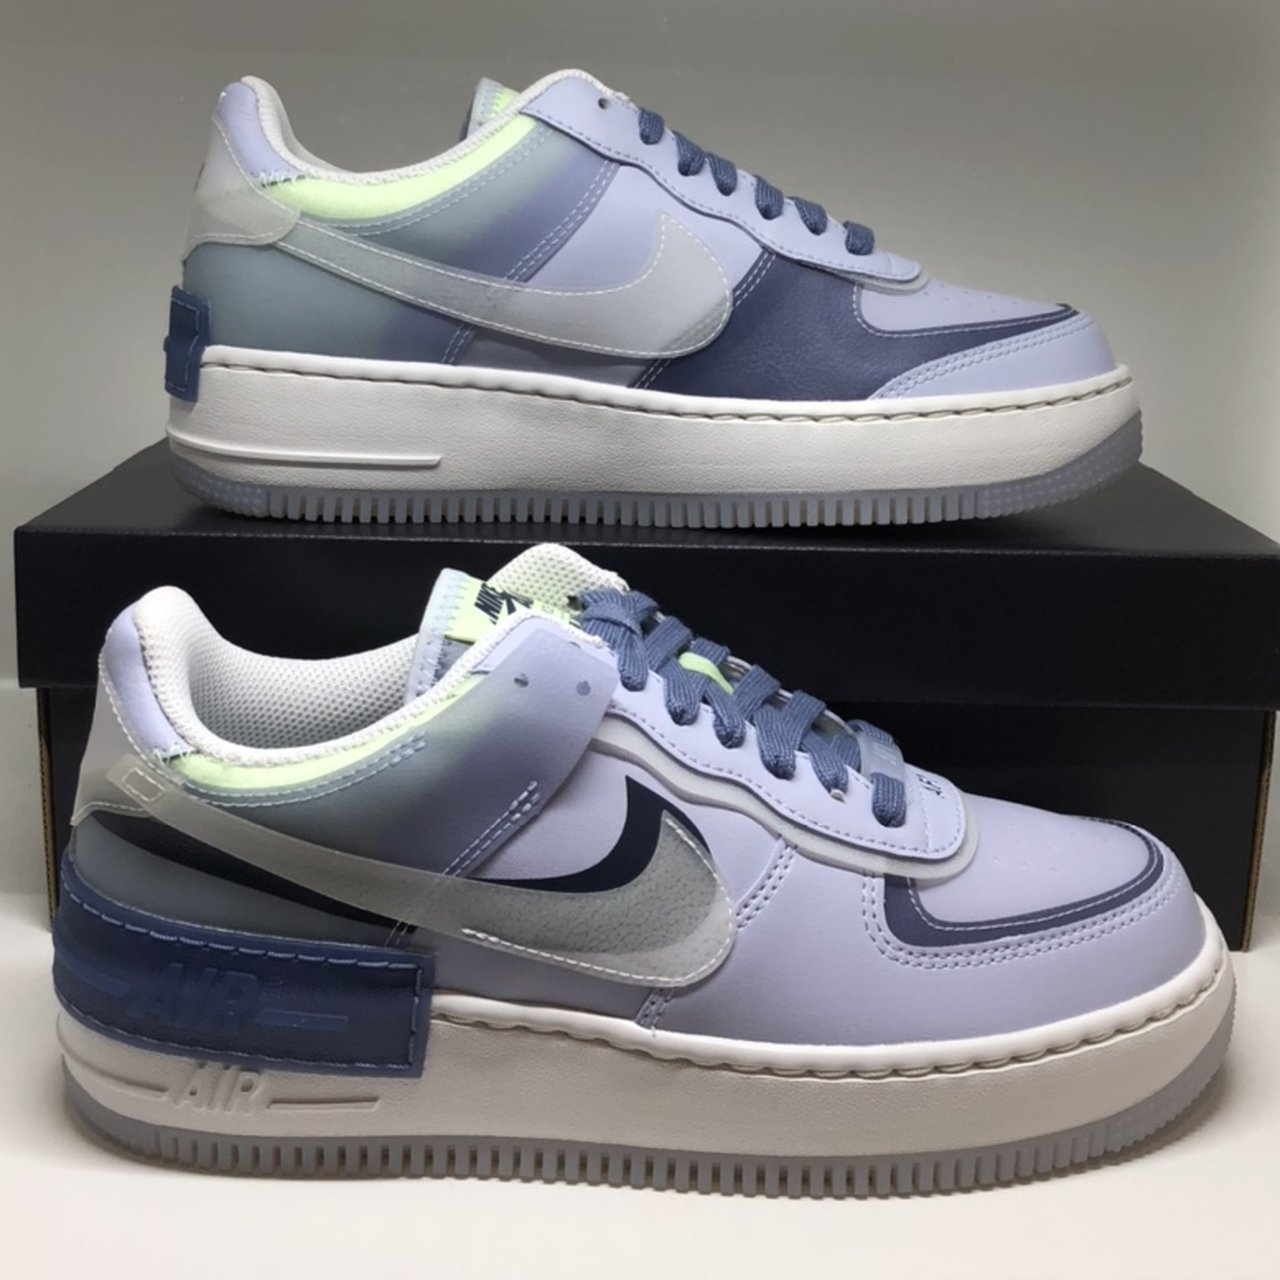 Nike Air Force 1 Shadow Ghost World Indigo Summit Depop If you want something that is universally appealing, the air force 1 low is here to meet your needs. nike air force 1 shadow ghost world